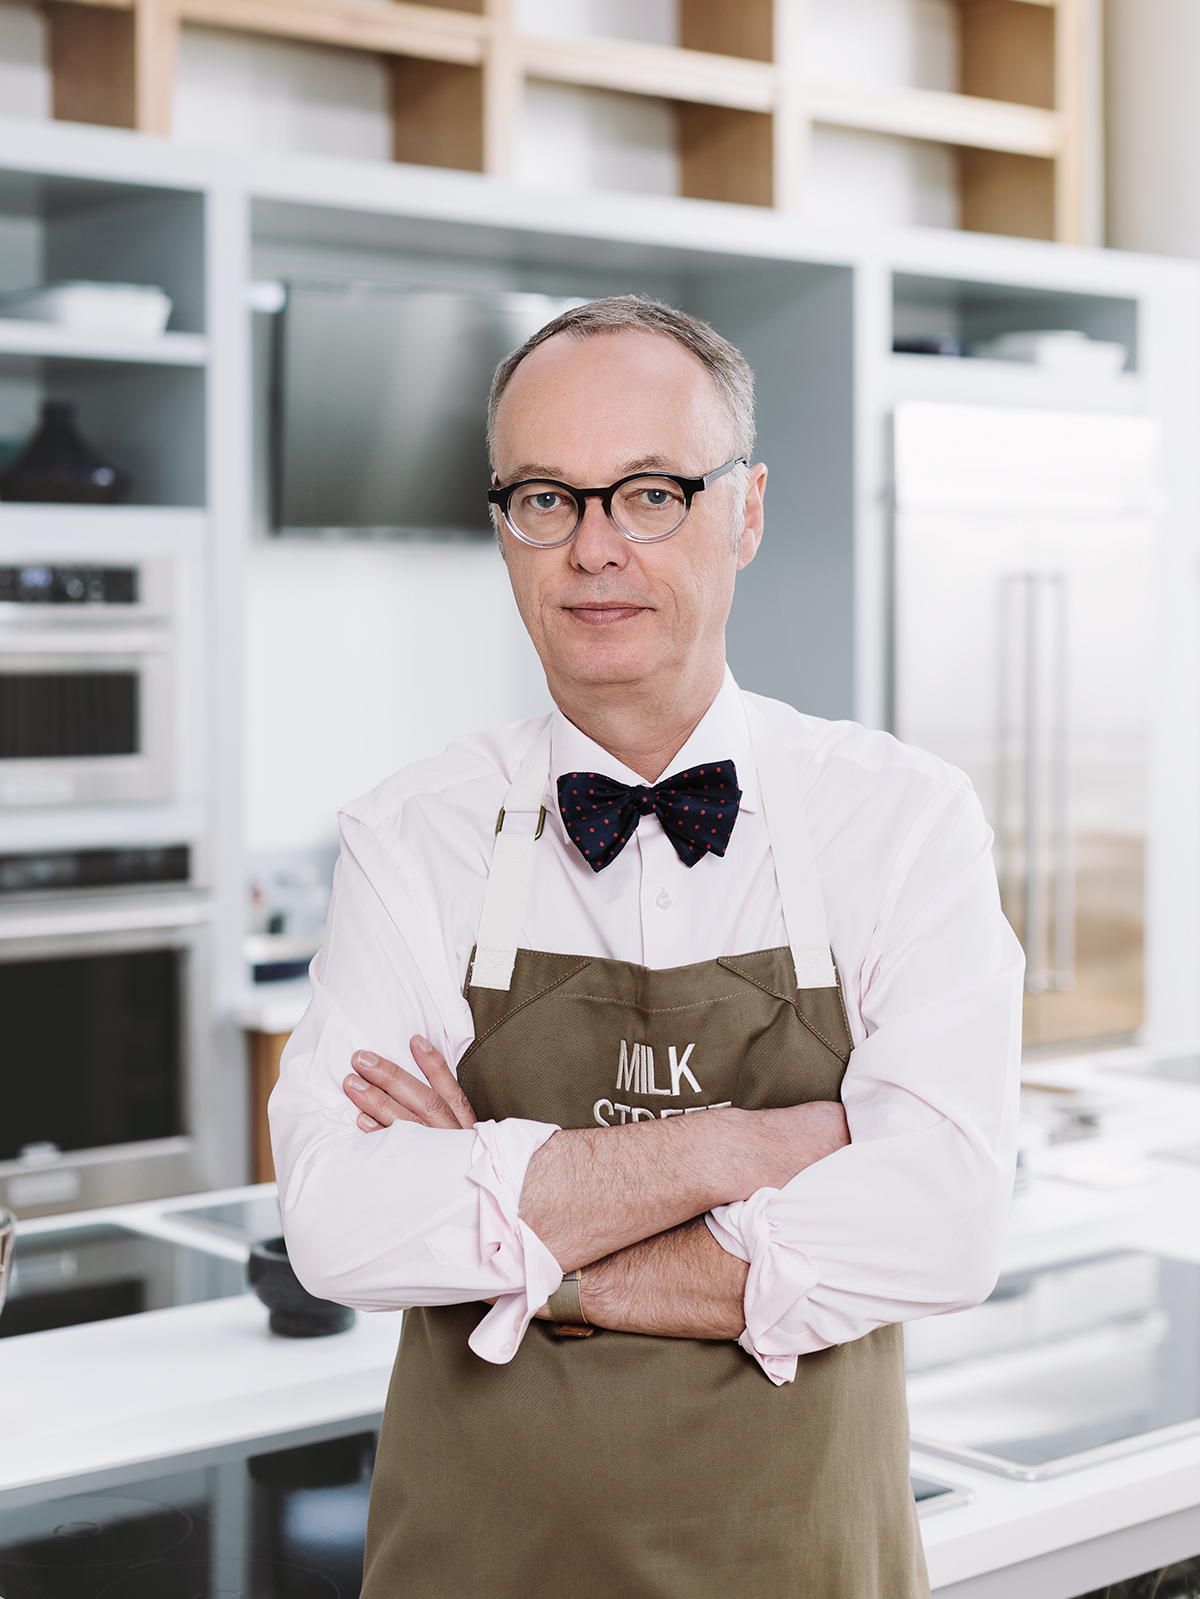 Pbs Cooks Country Test Kitchen Christopher Kimball Bow Ties Recipes And Lawsuits